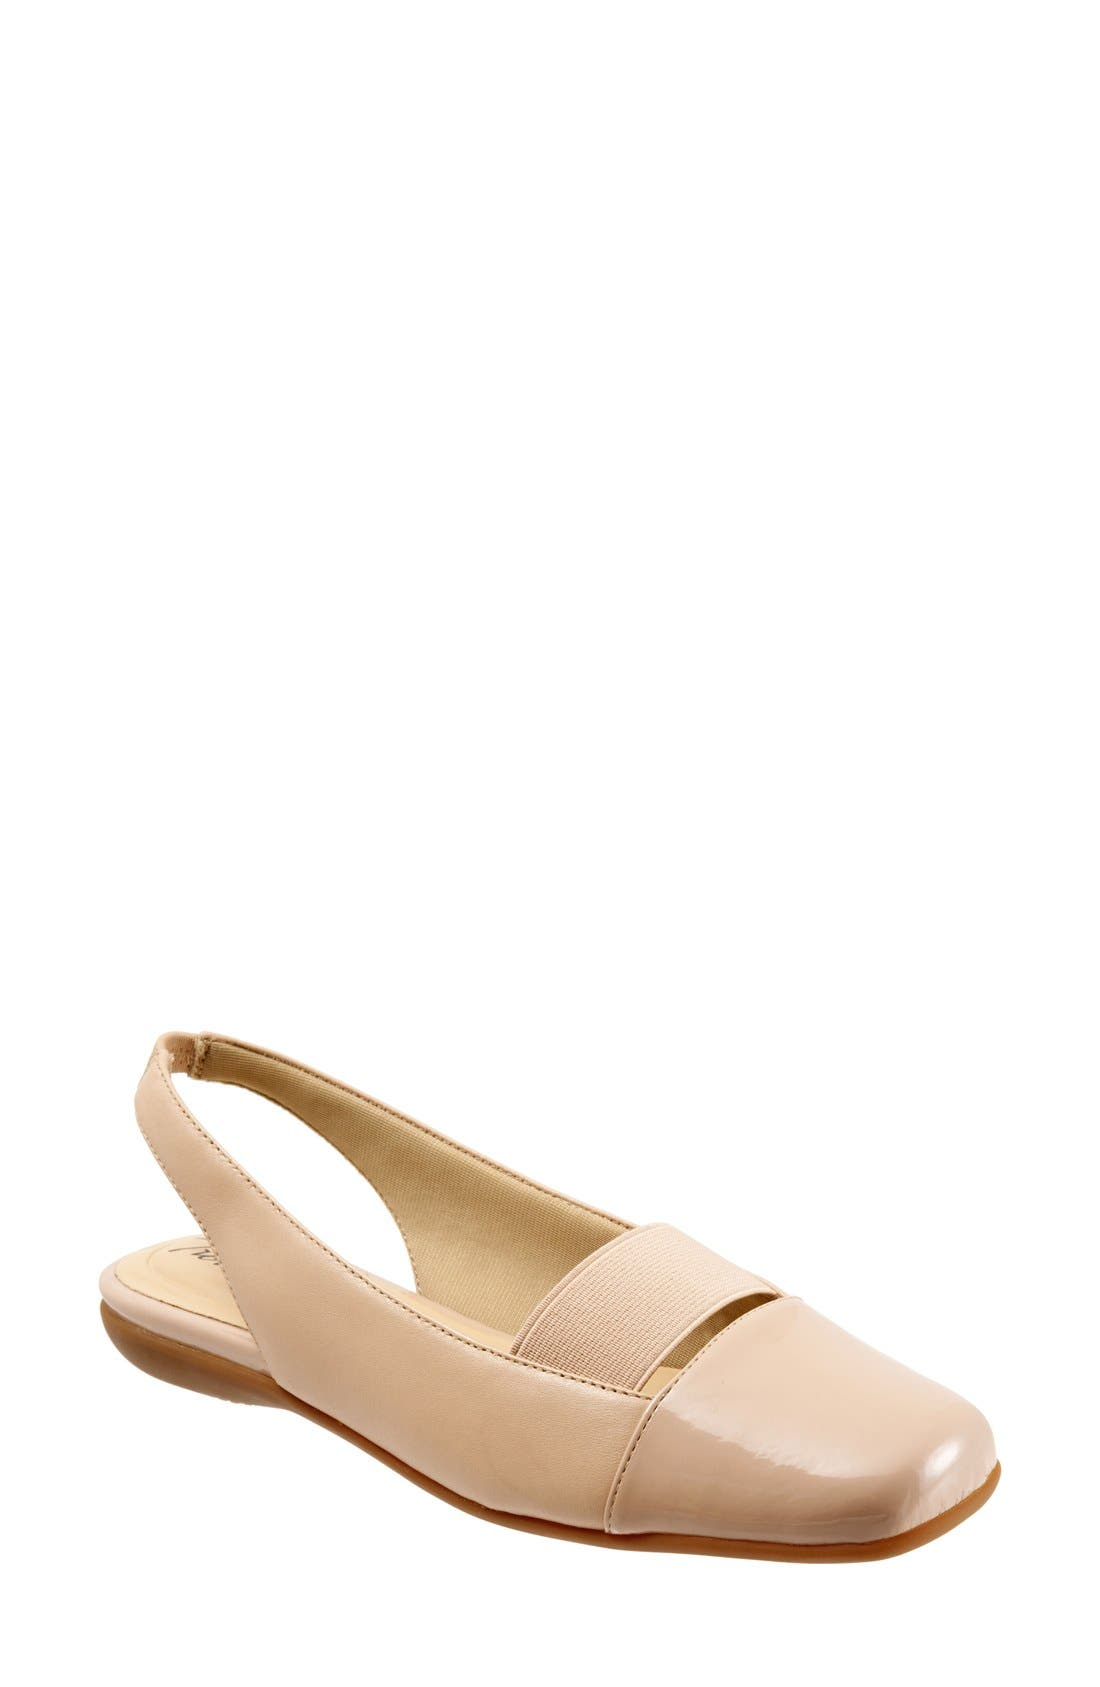 Alternate Image 1 Selected - Trotters 'Sarina' Slingback Flat (Women)